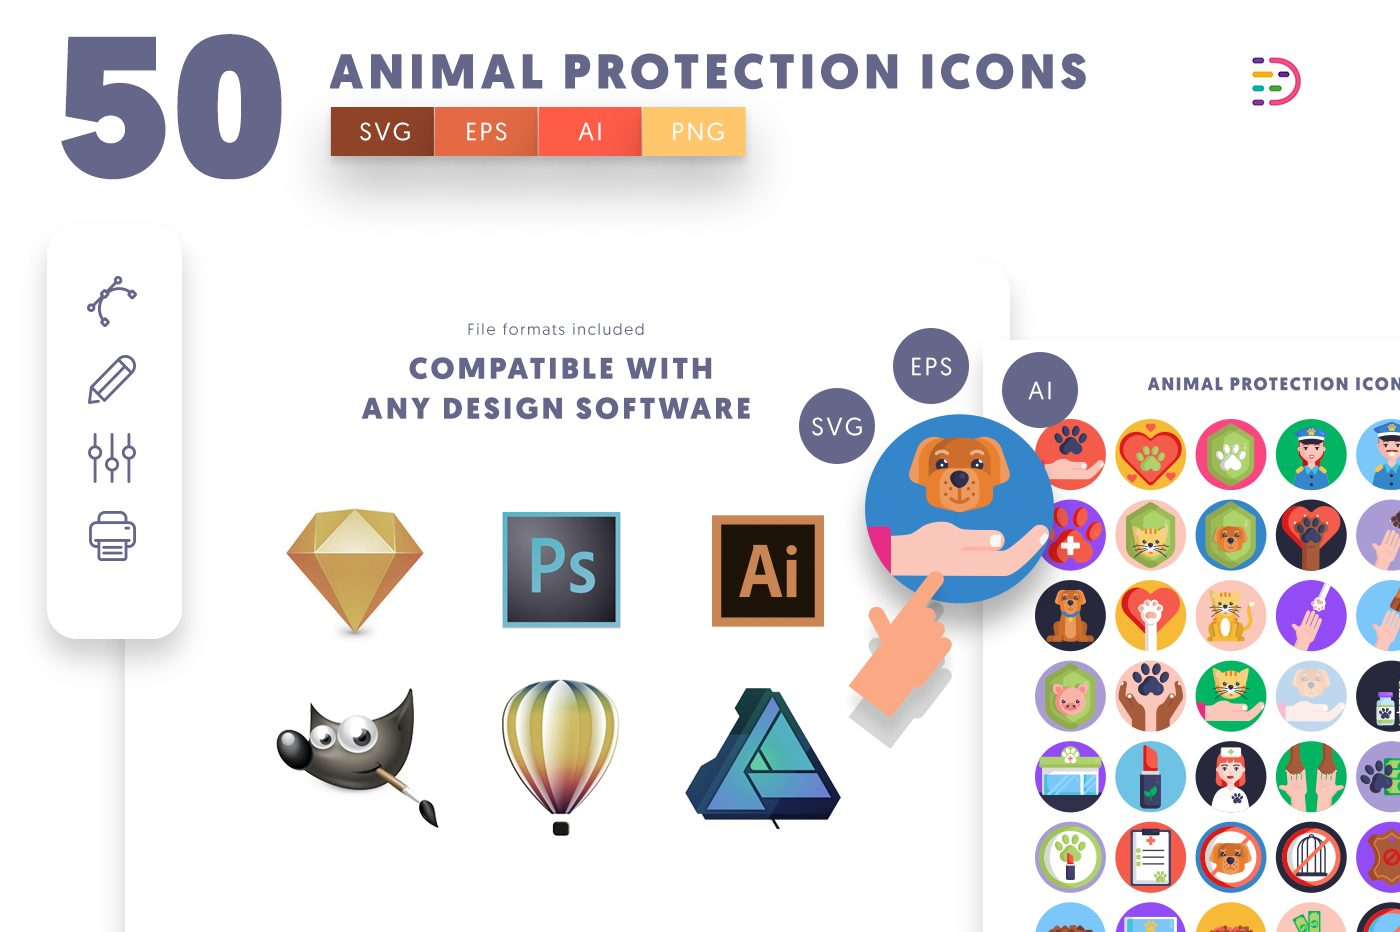 full vector 50 Animal Protection Icons EPS, SVG, PNG